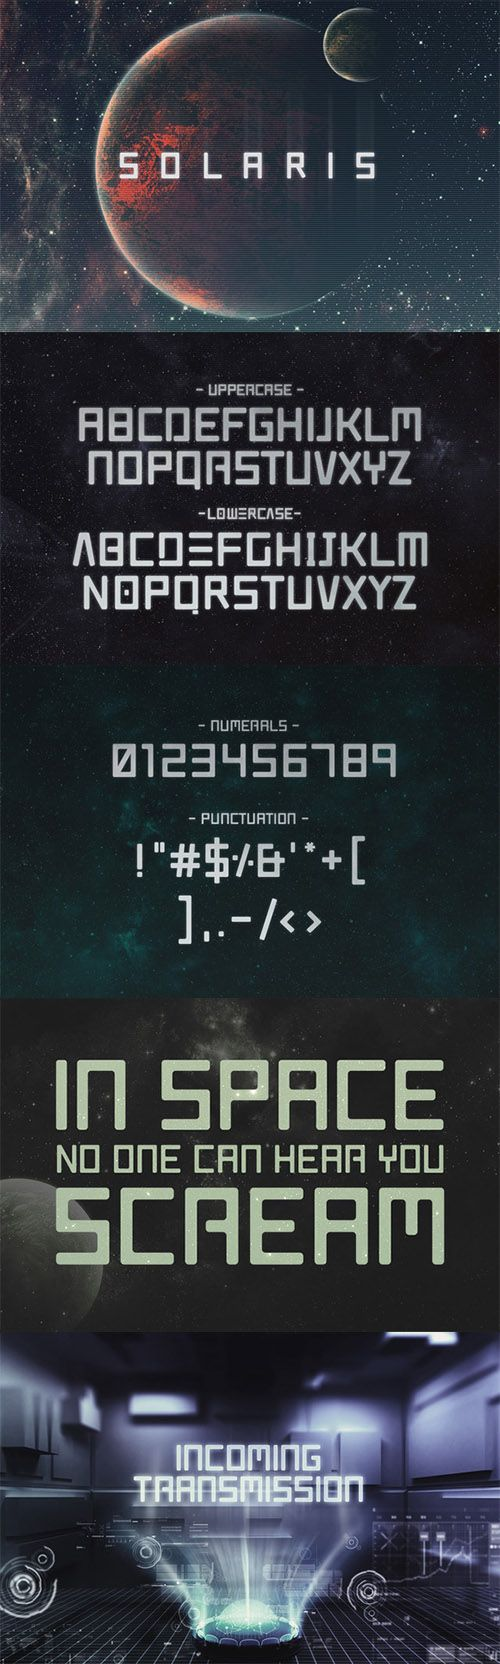 i like the galaxy colours and the futuristic font used.